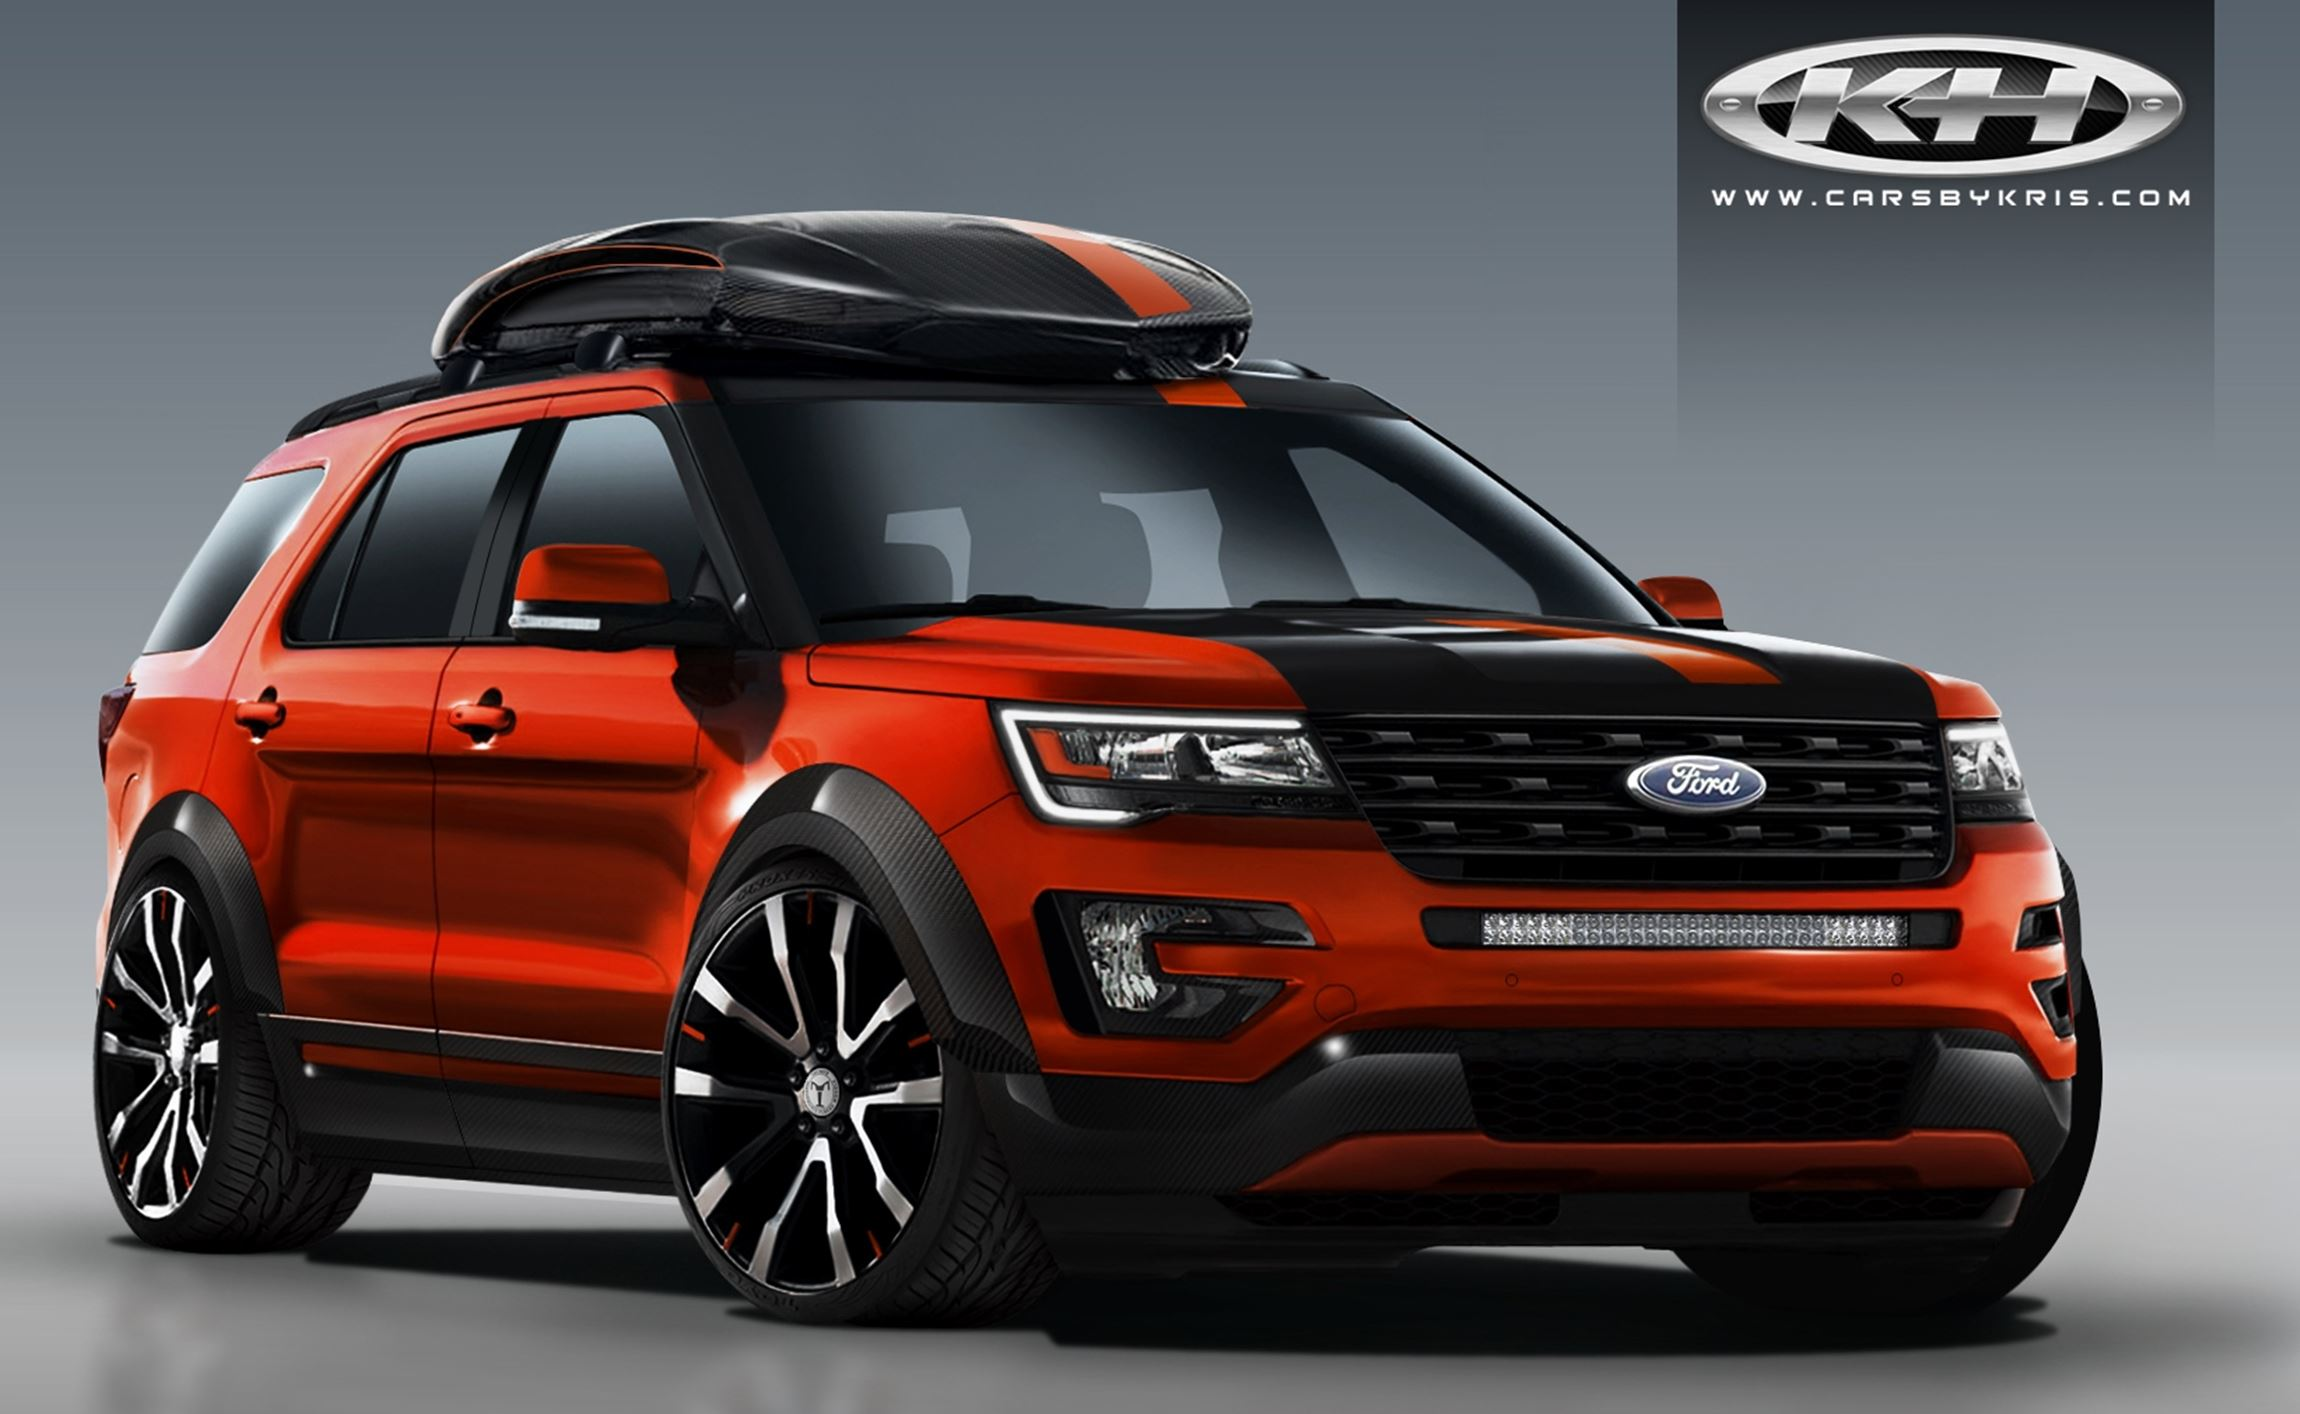 2015 Ford F 150 Custom New Car Specs And Price 2019 2020 Wiper Motor Wiring Diagram Motorhomes Rent Choice Sema Trucks Preview